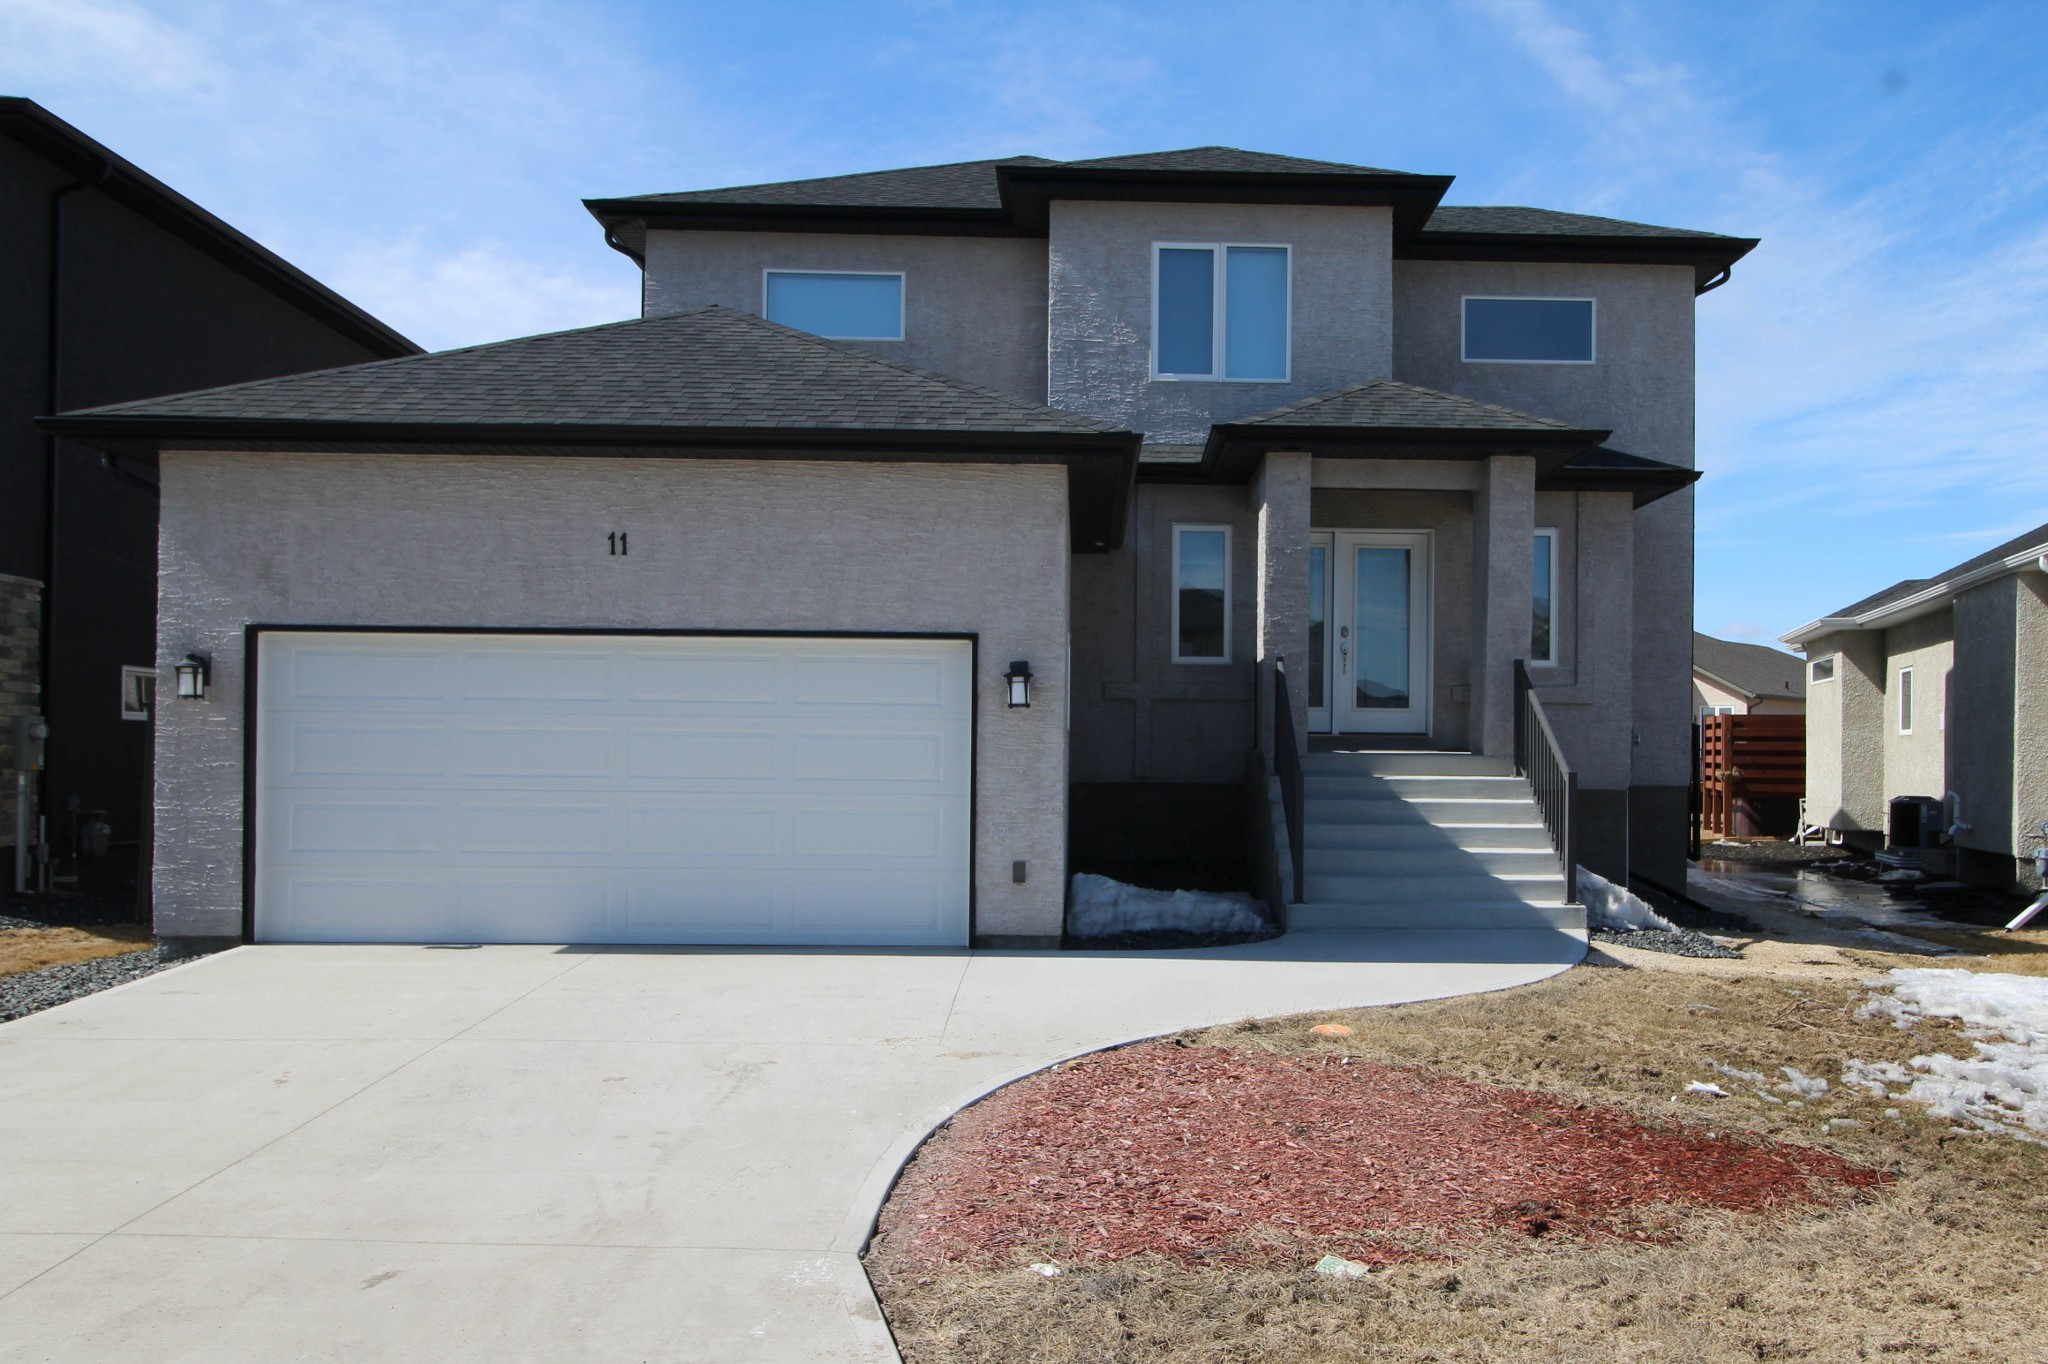 Main Photo: 37 Lakebourne Place in Winnipeg: Amber Trails Single Family Detached for sale (4F)  : MLS®# 1808522